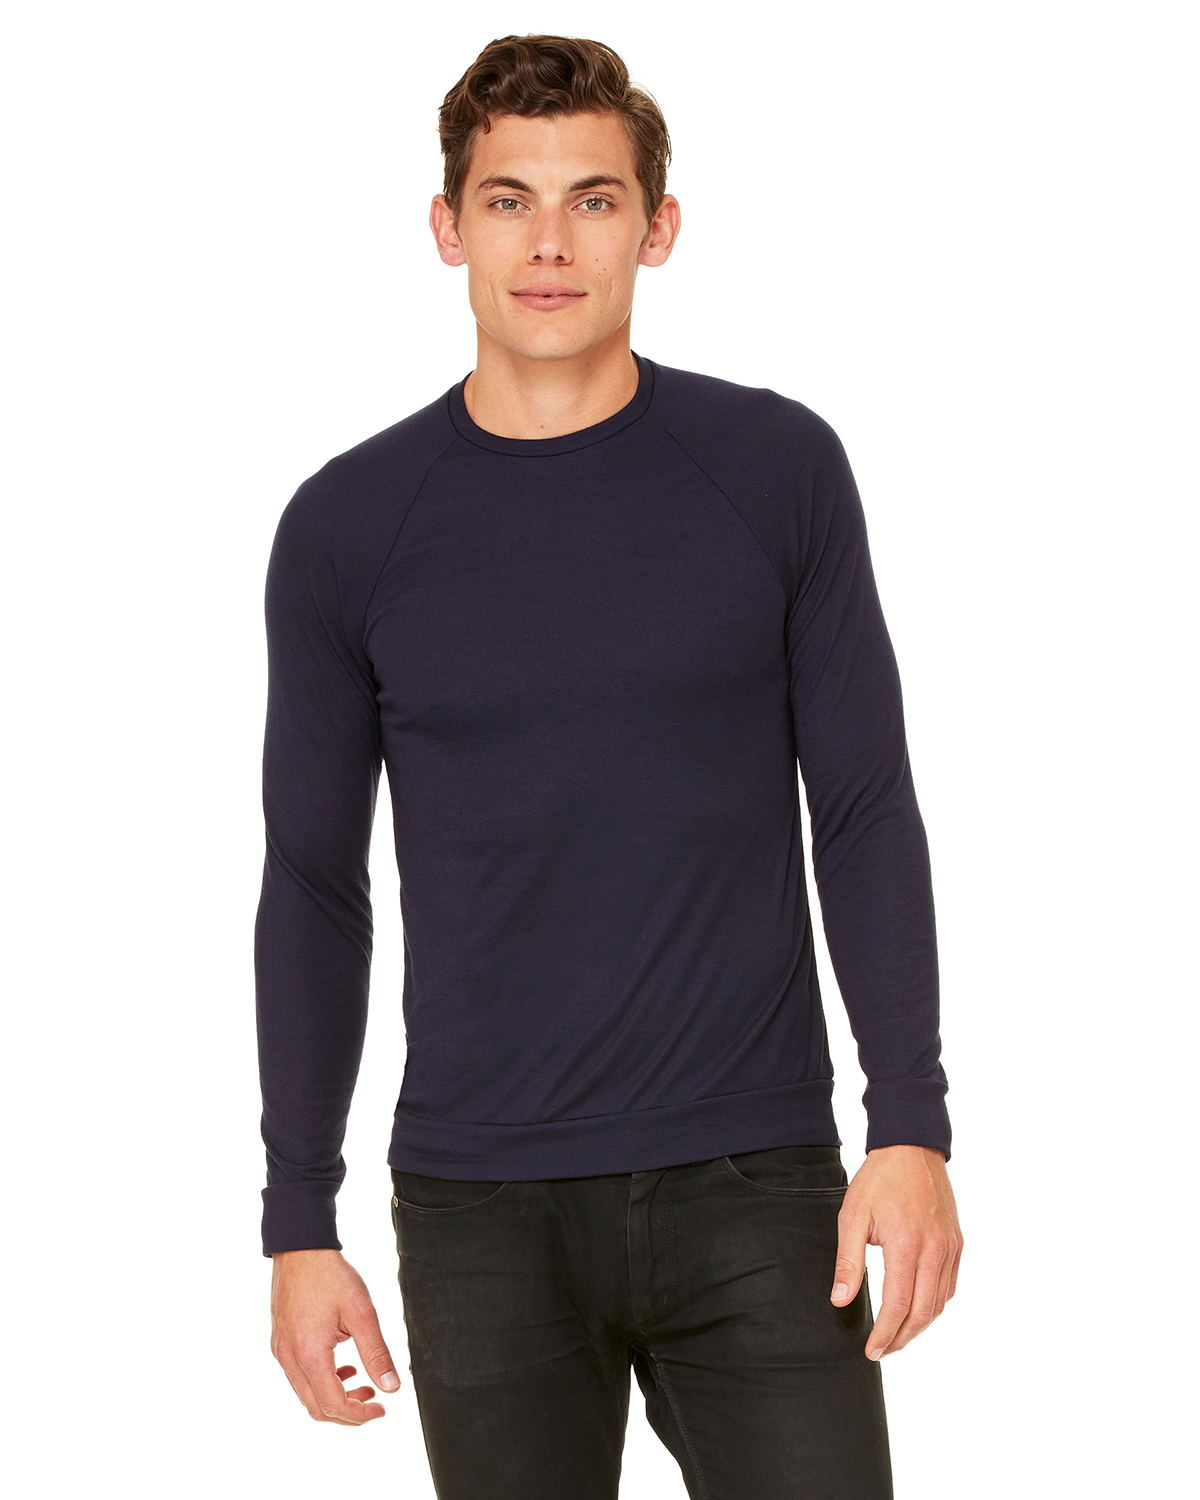 Bella + Canvas 3981C - Unisex Lightweight Sweater